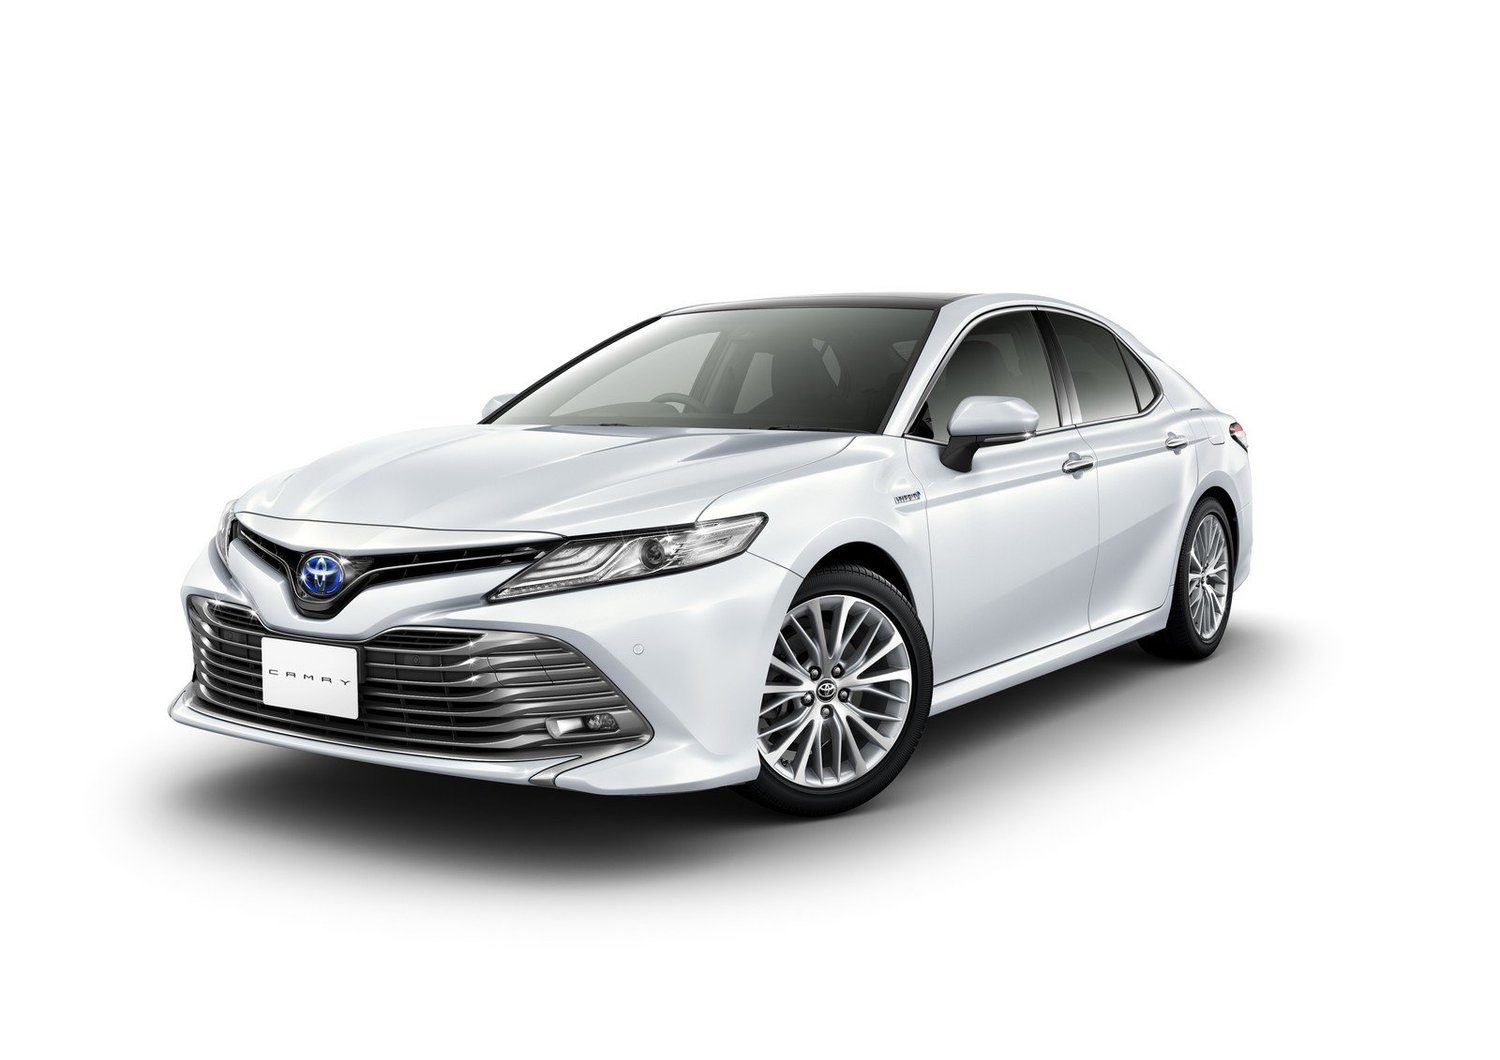 "<span style=""font-weight: bold;"">TOYOTA CAMRY</span>"